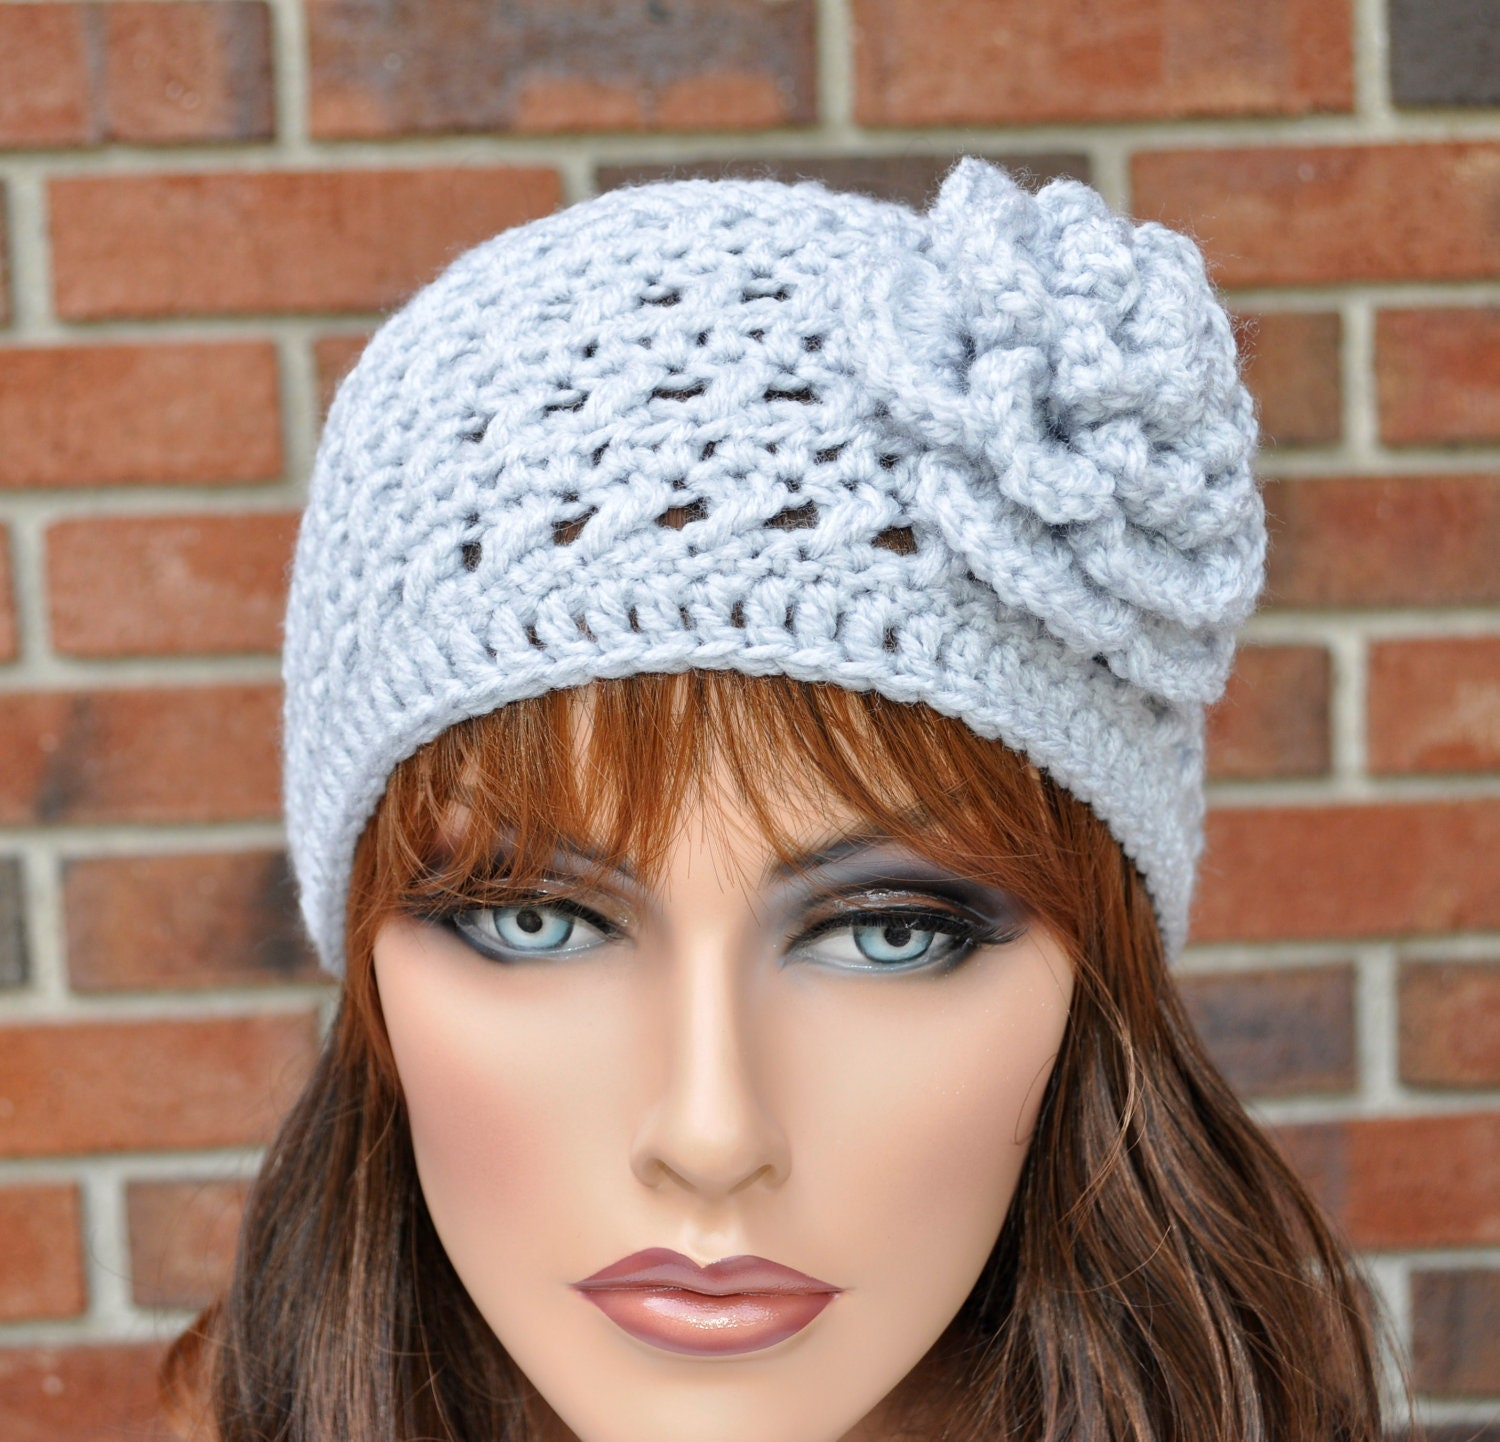 Crochet Wide Headband With Flower Free Pattern : Items similar to Extra wide Crochet Headband Ear Warmer ...